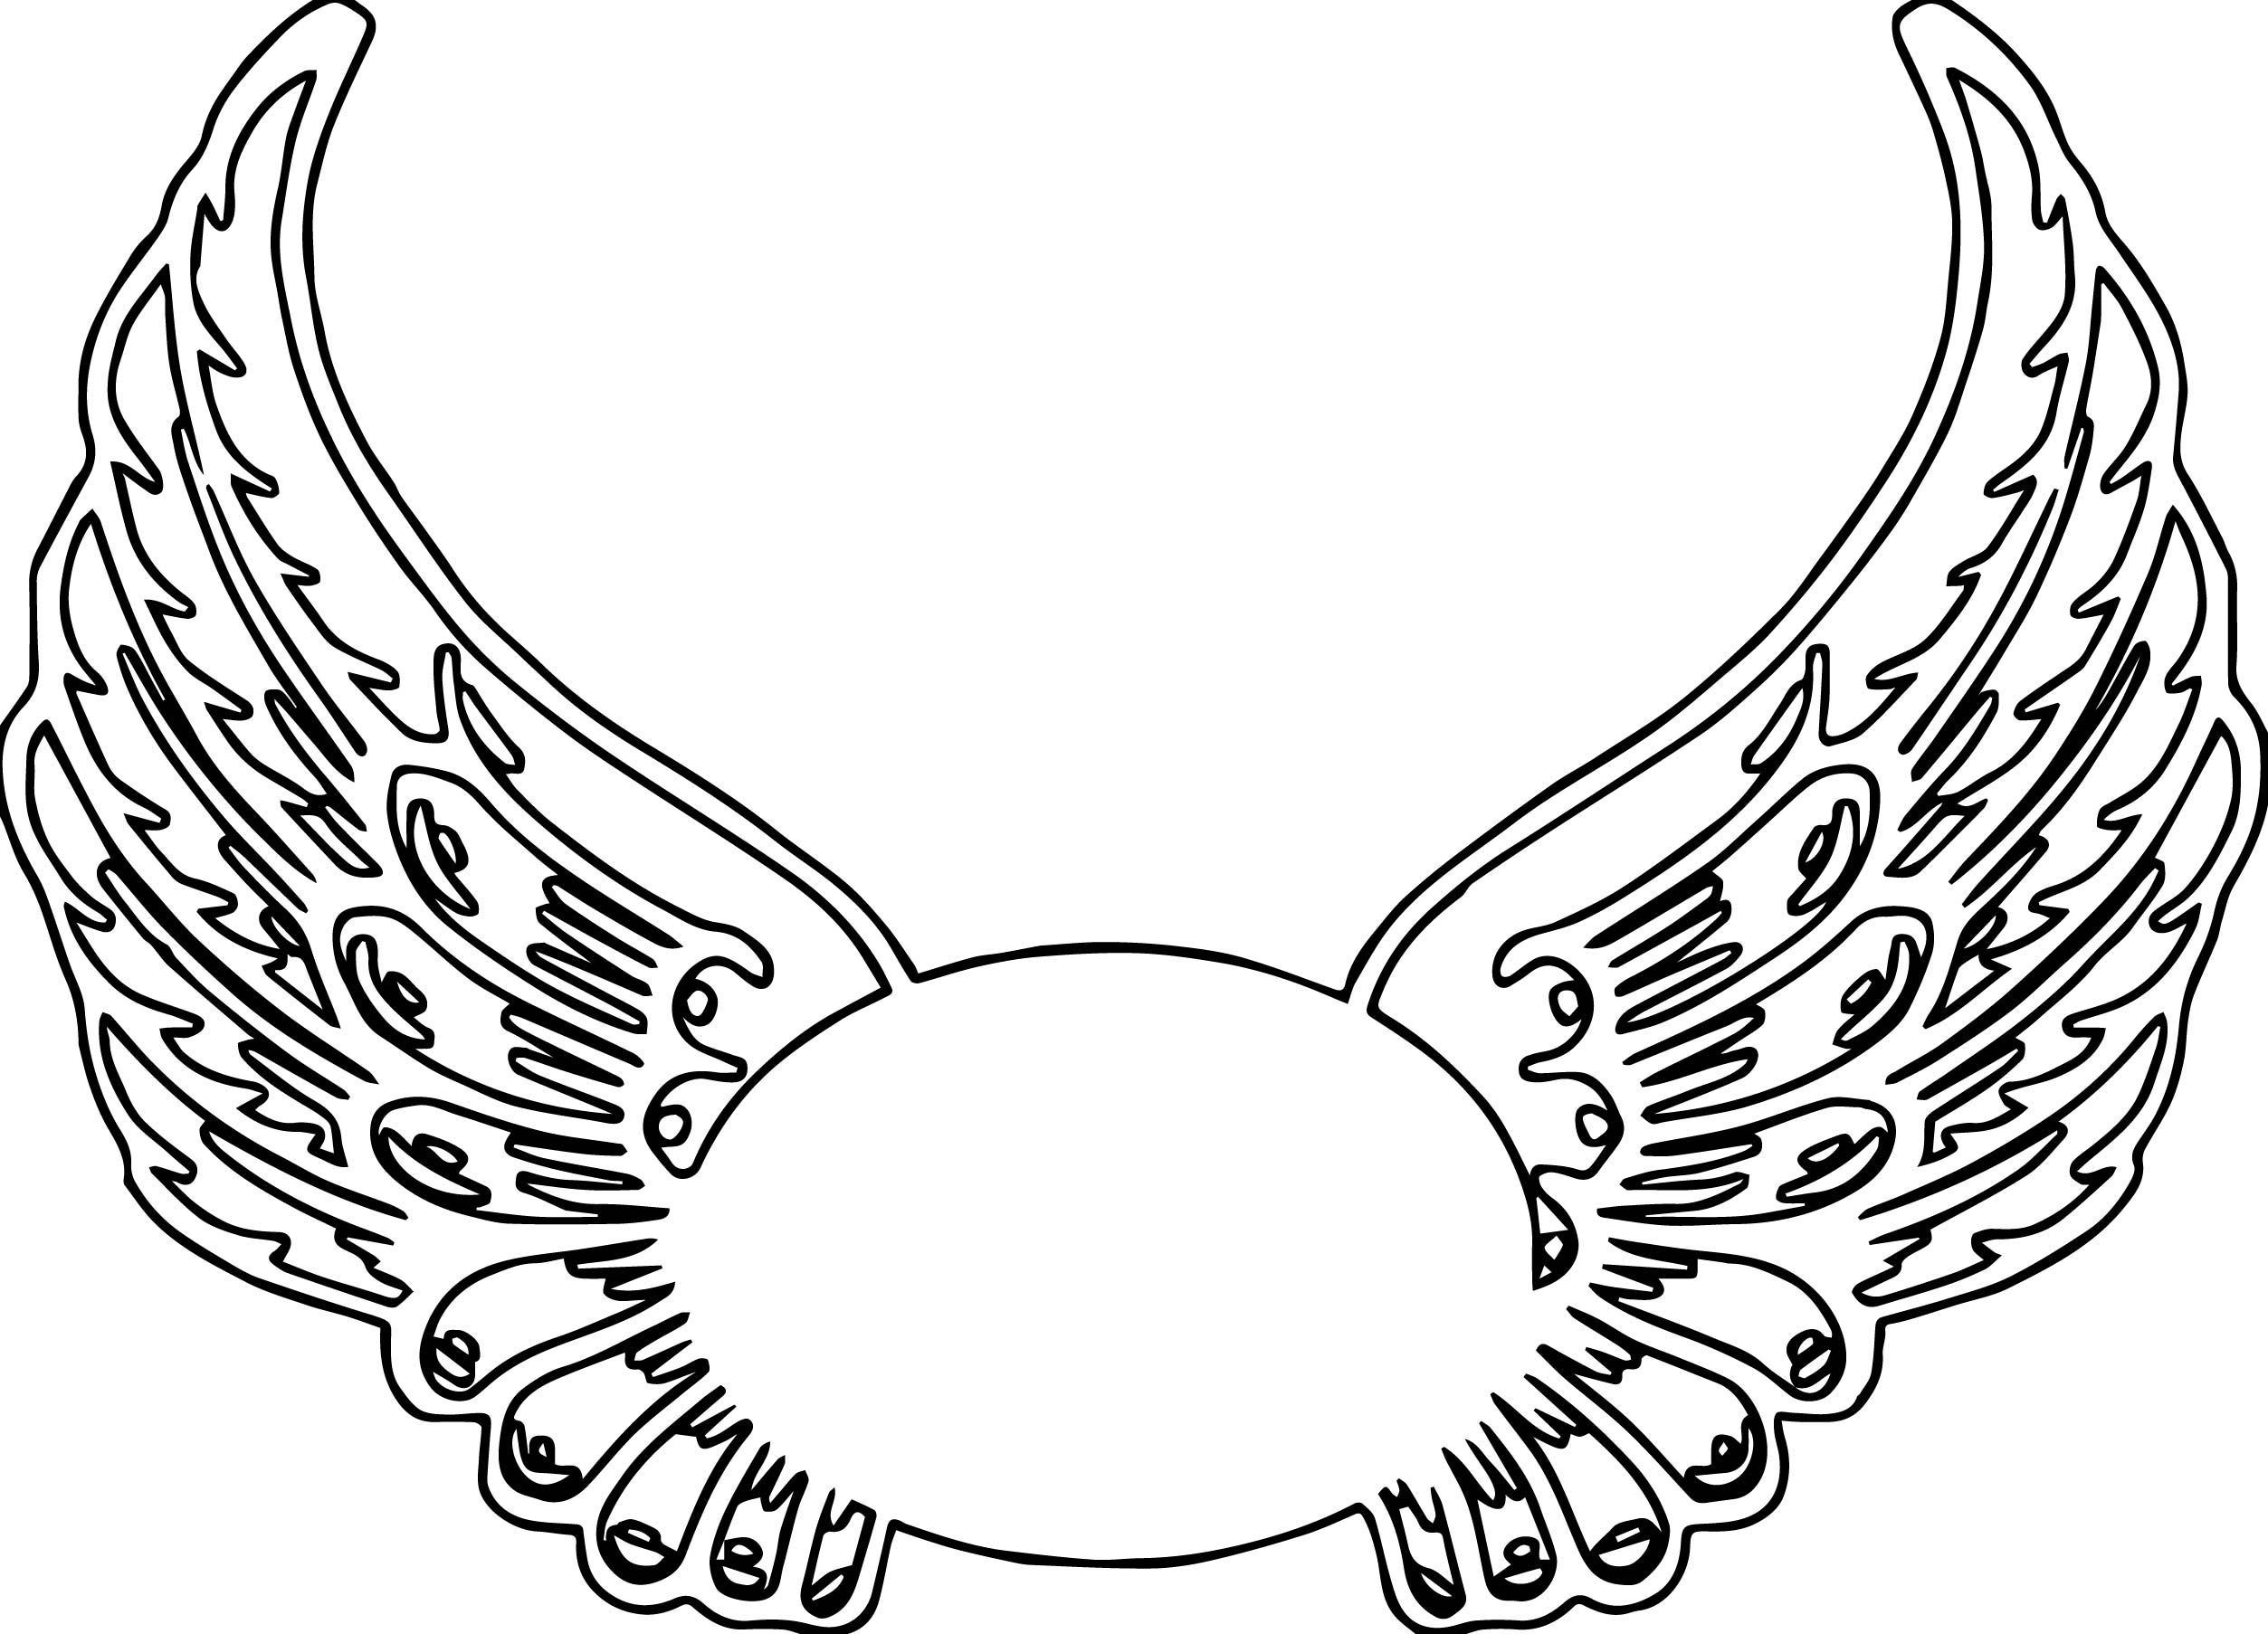 Guardian Angel Wings Hi Coloring Page | Wecoloringpage